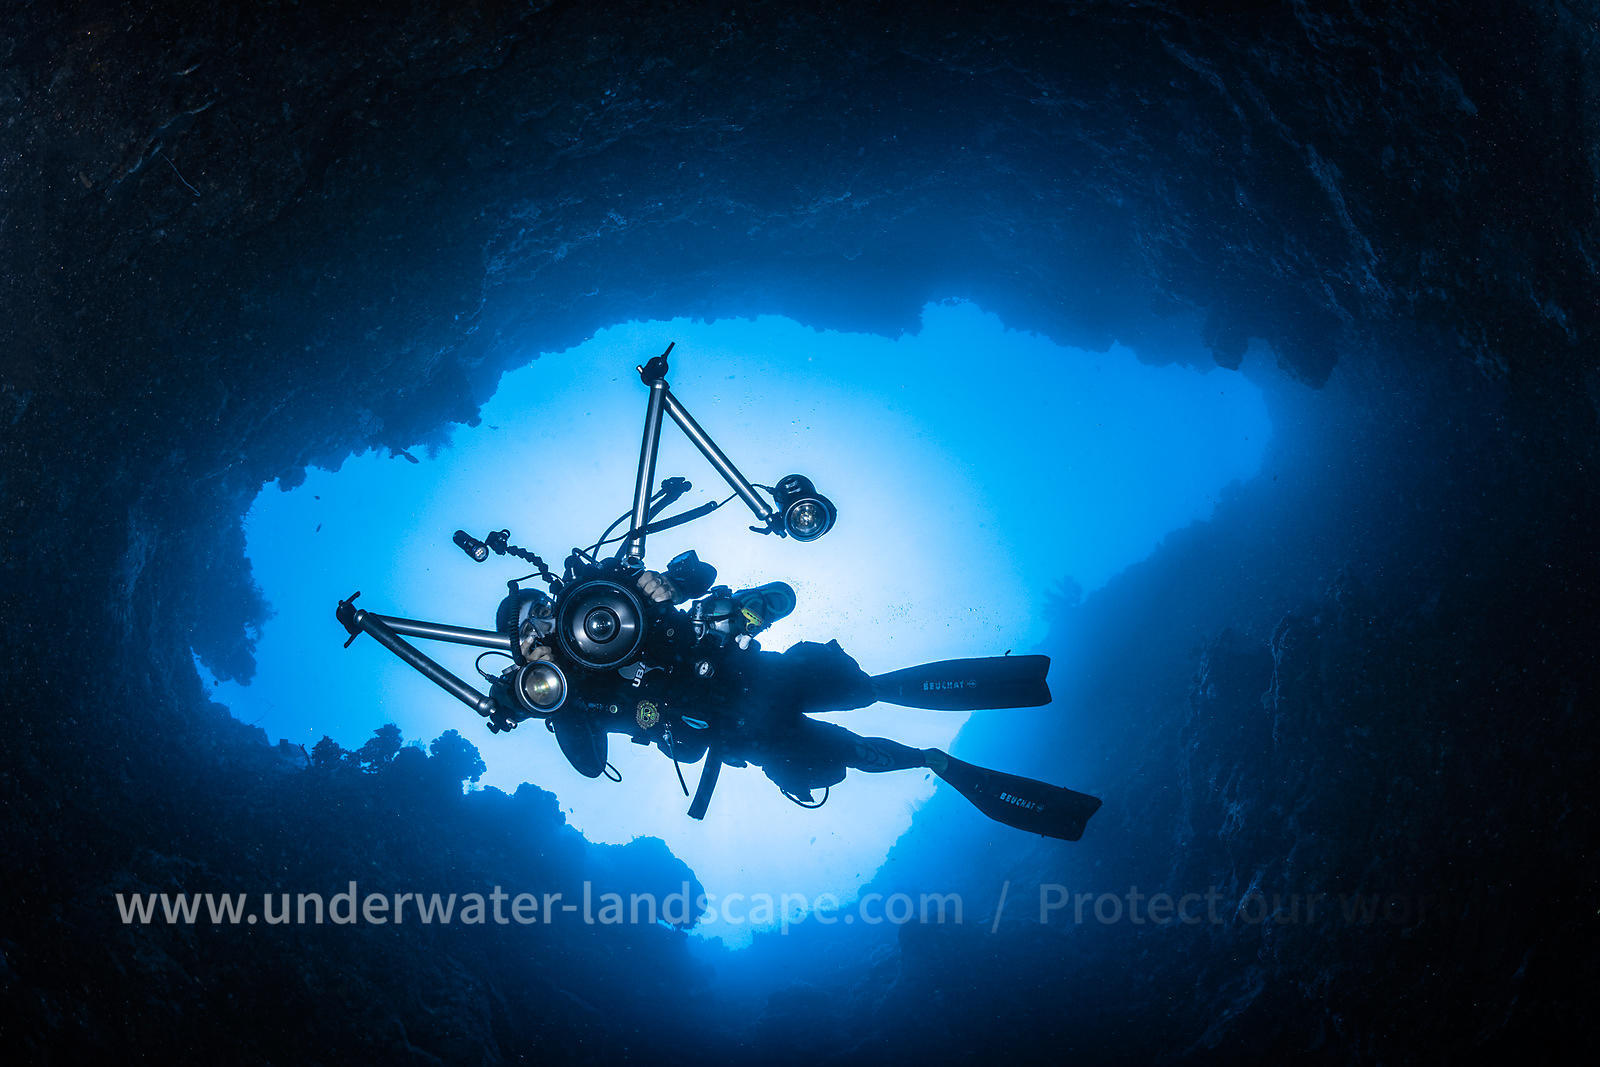 Inside the reef